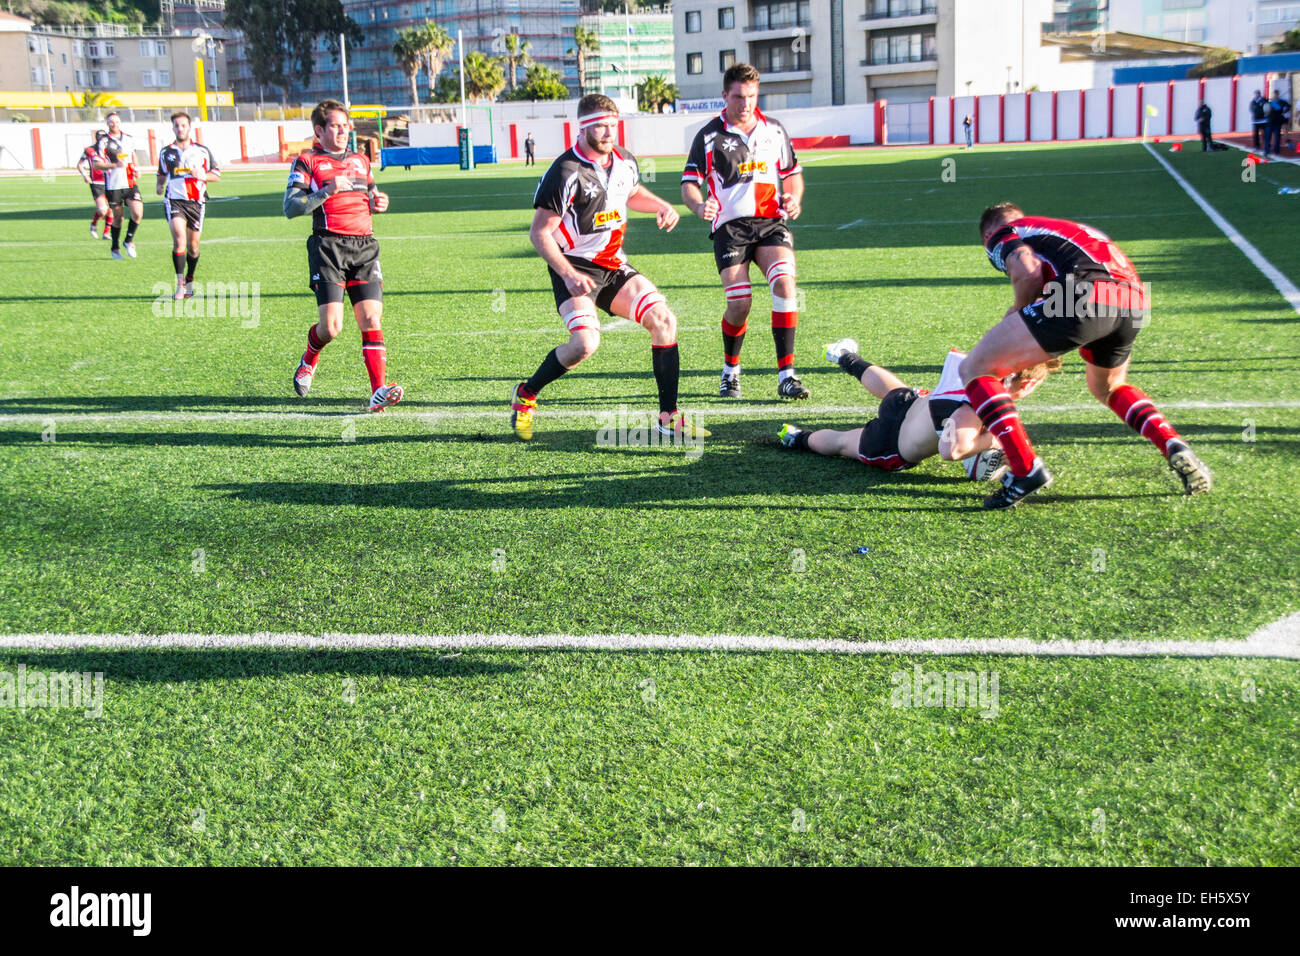 Gibraltar - 7th March 2015 - Gibraltar were beaten 8-33 by Malta in the friendly international rugby match played Stock Photo